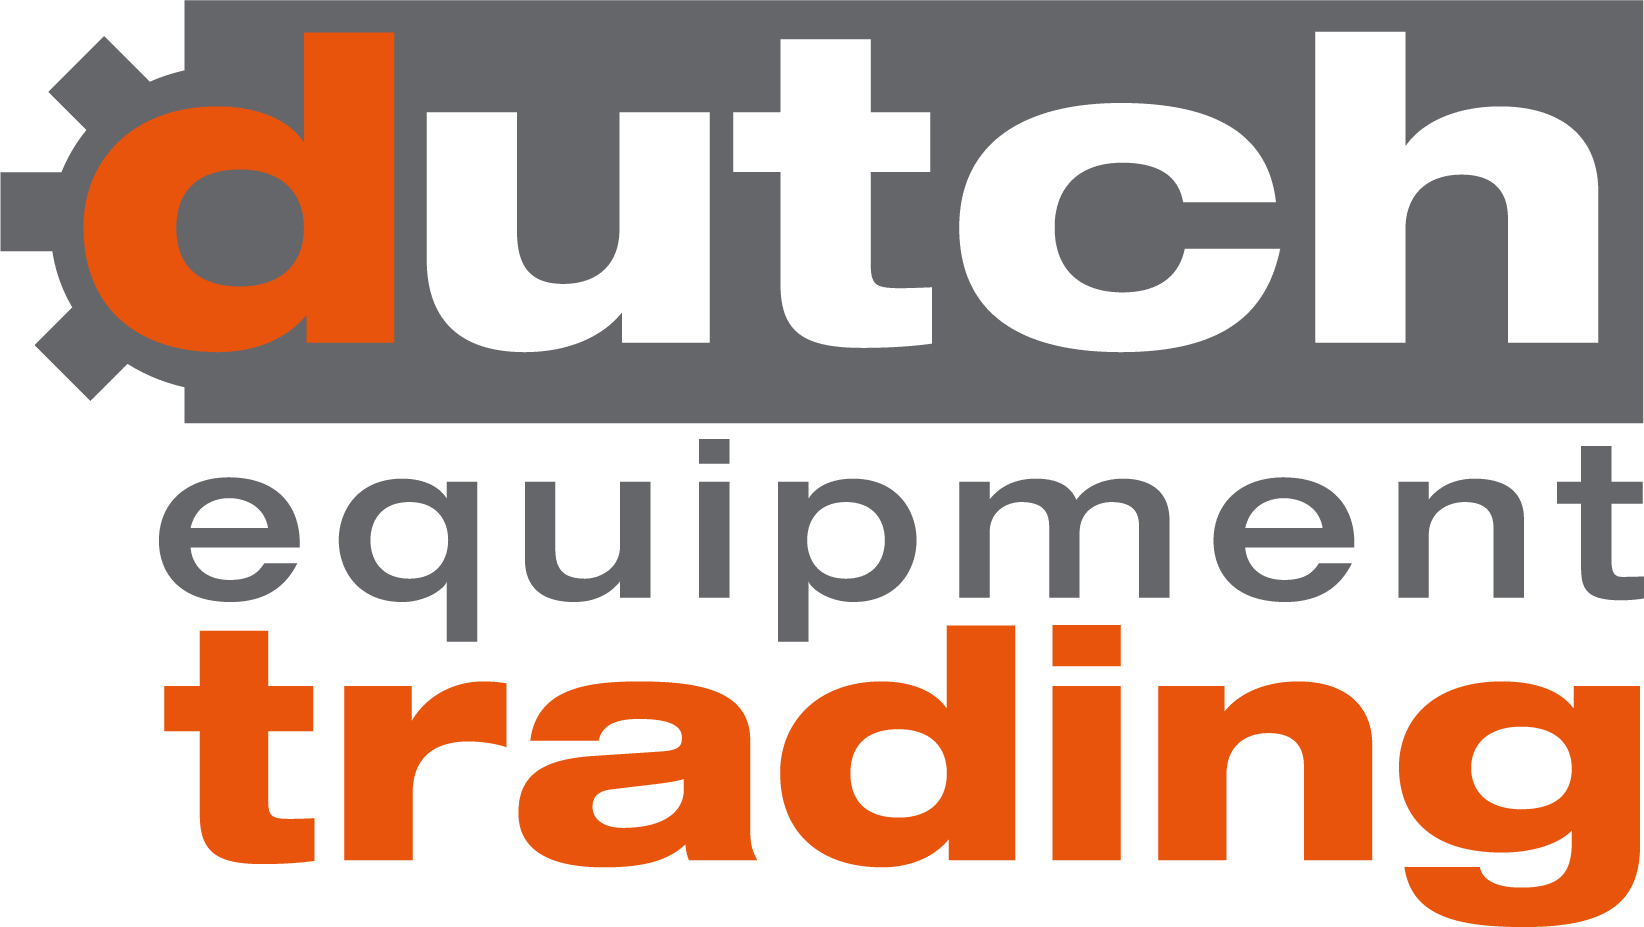 Dutch Equipment Trading